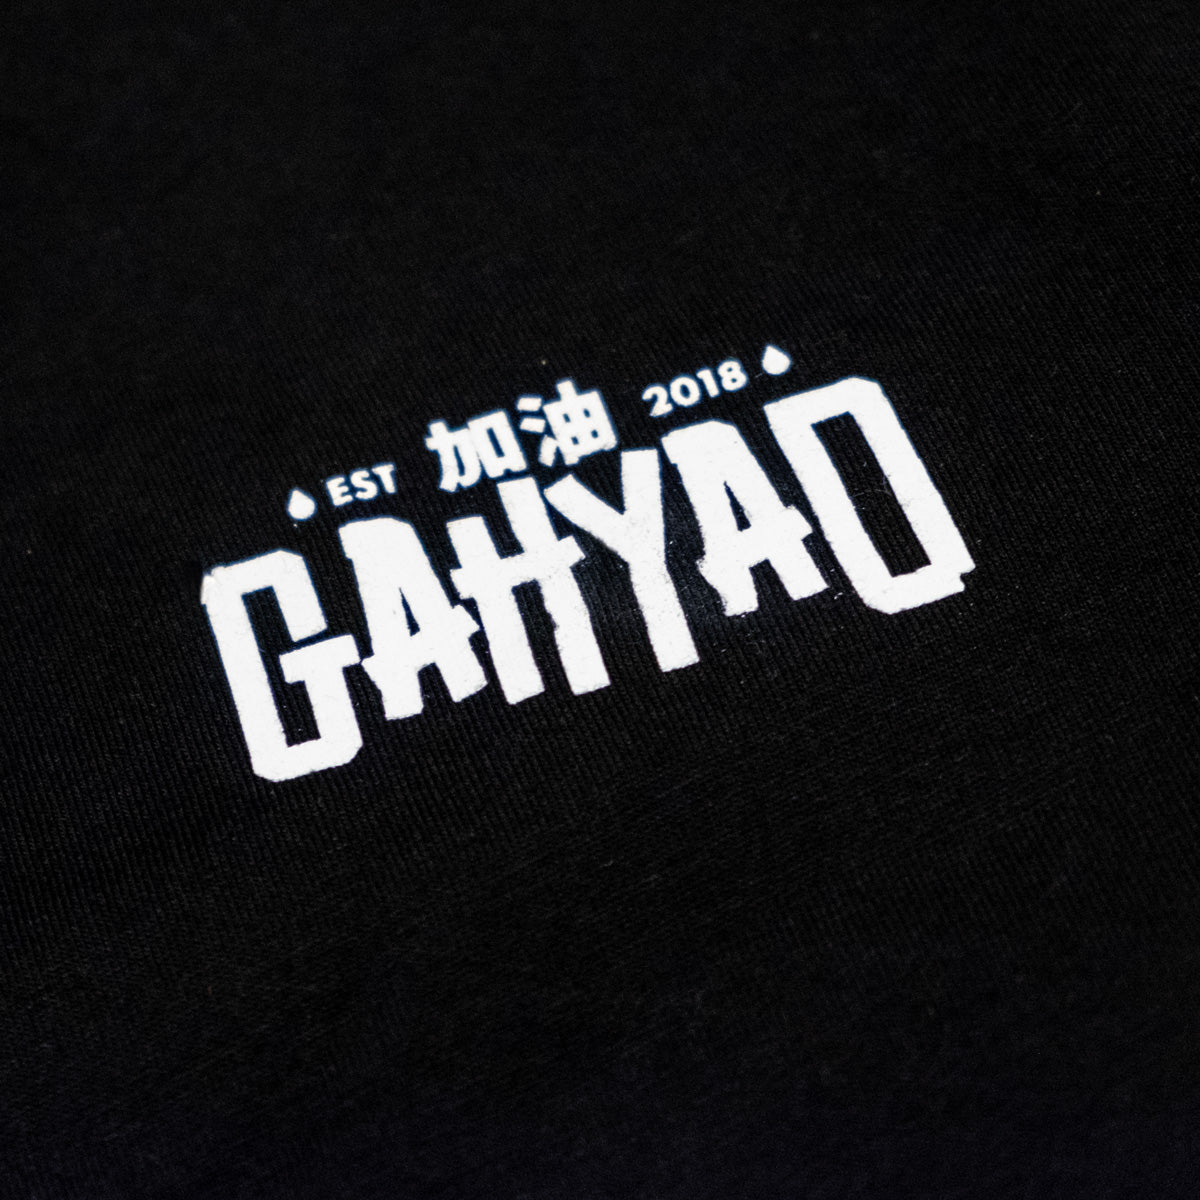 Gahyao 4x Tee - Close Up Front